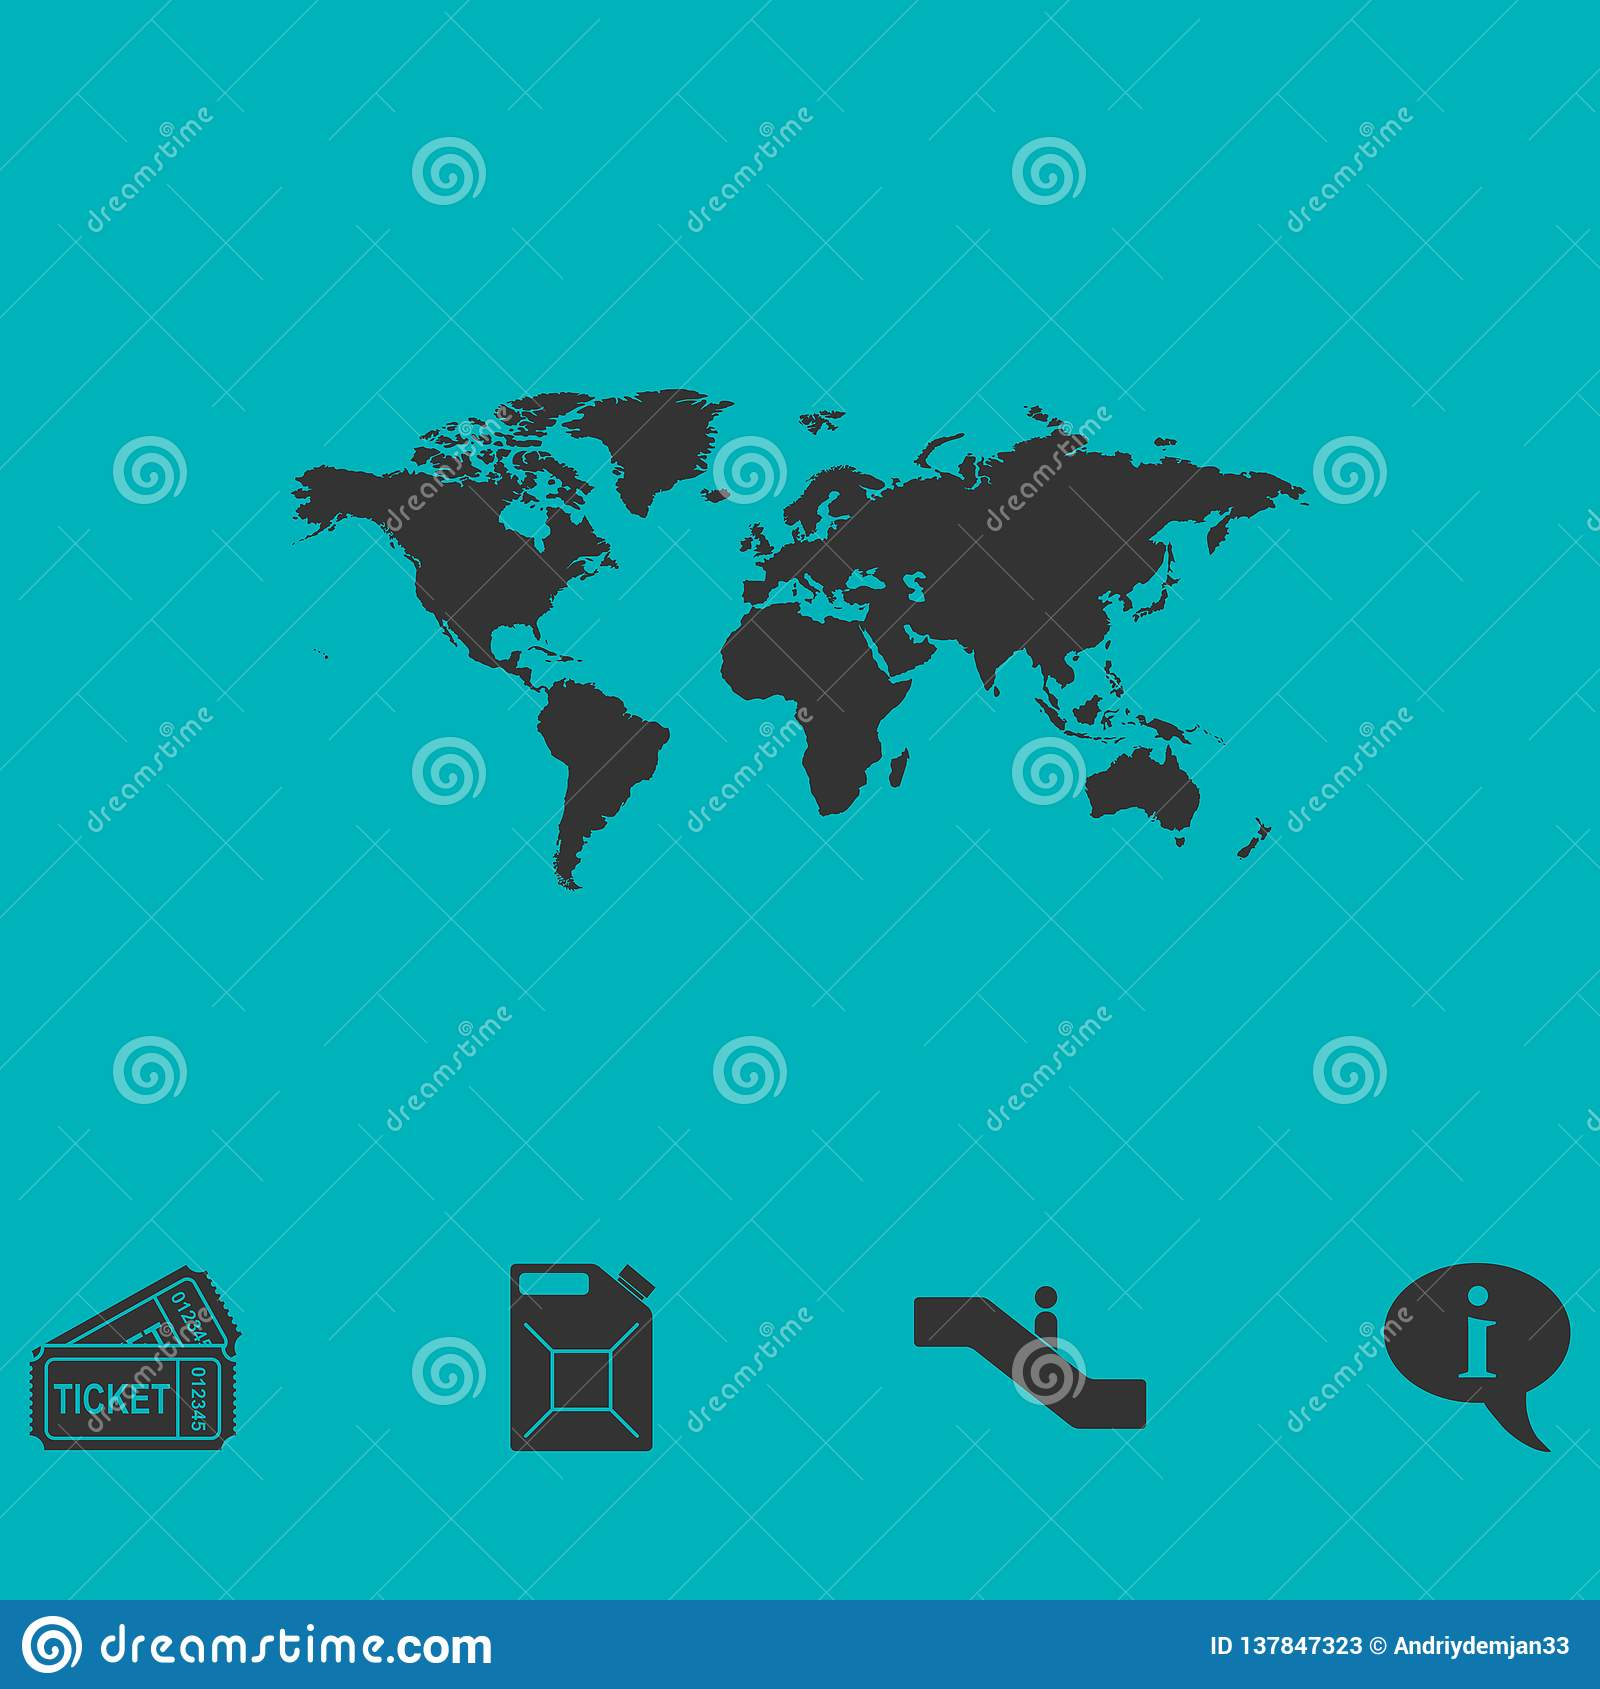 World map icon flat stock vector  Illustration of continents